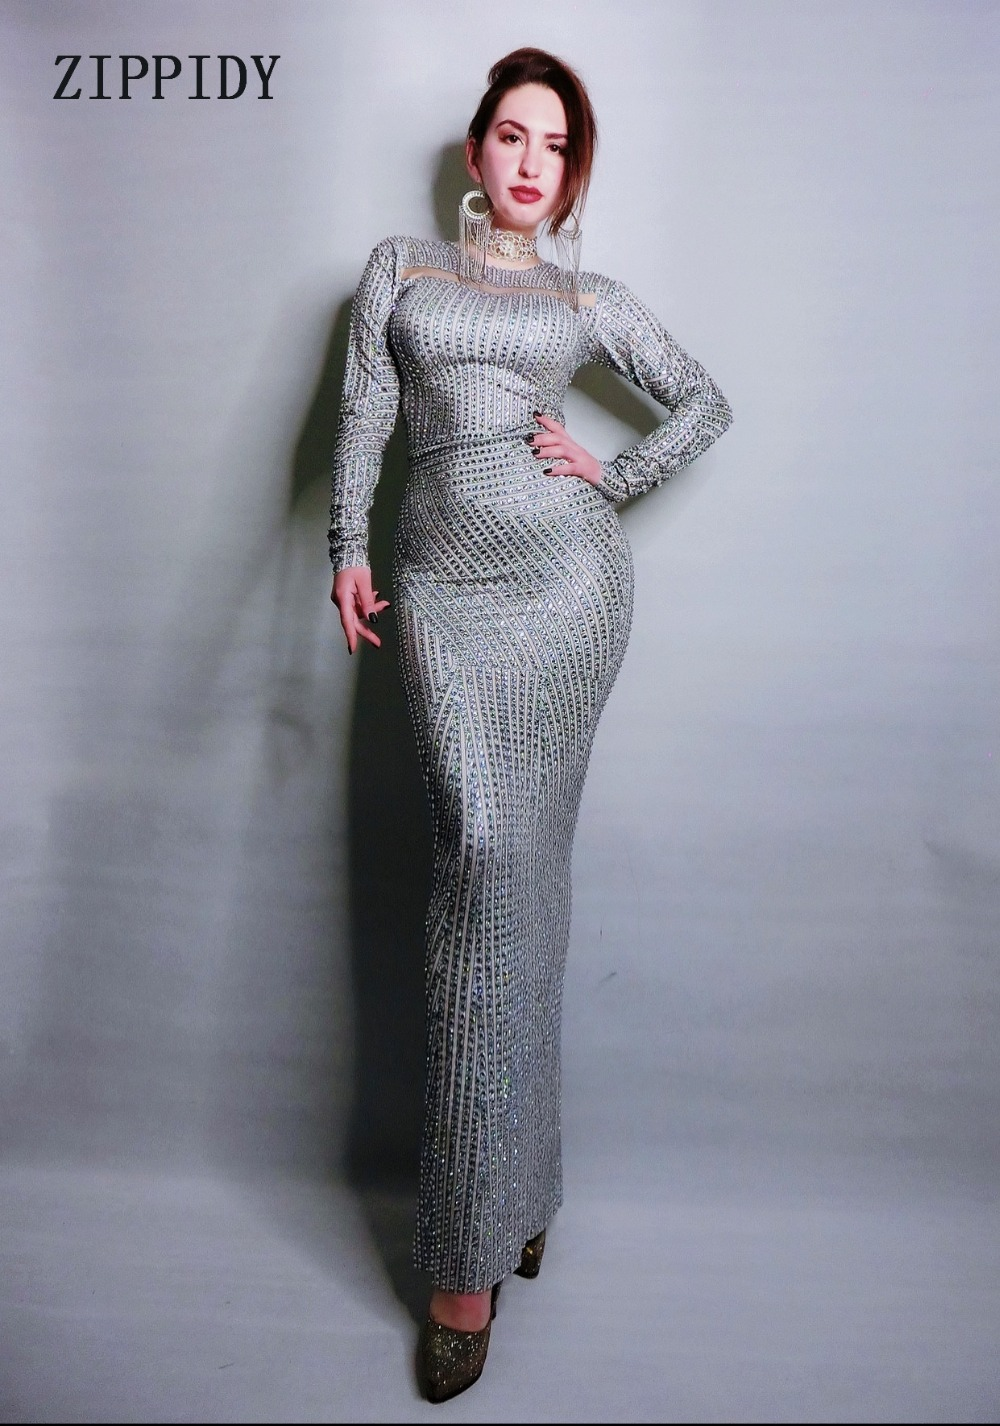 Full Rhinestone Long Sleeves Sparkly Long Dress Sexy Stage Outfit Birthday Party Celebrate Women Dance Dress